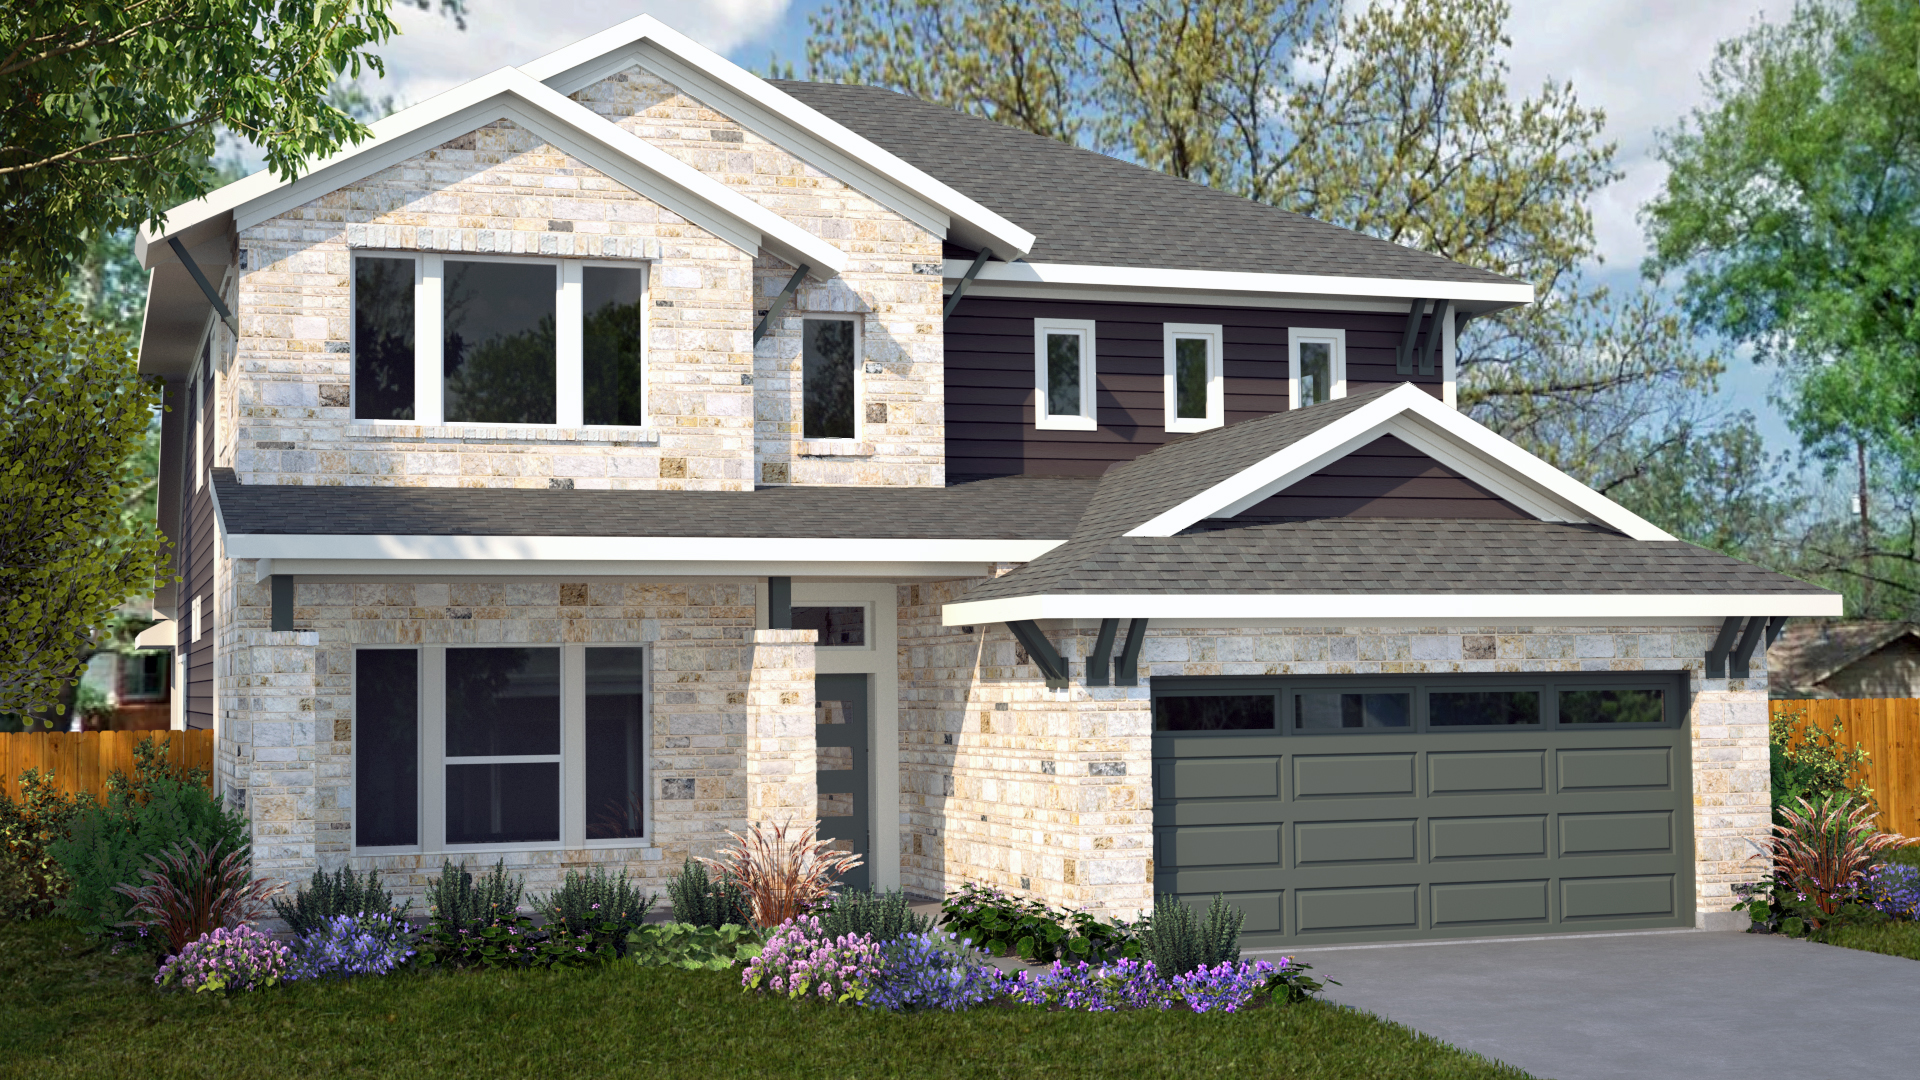 3D Exterior Home Rendering - Stone